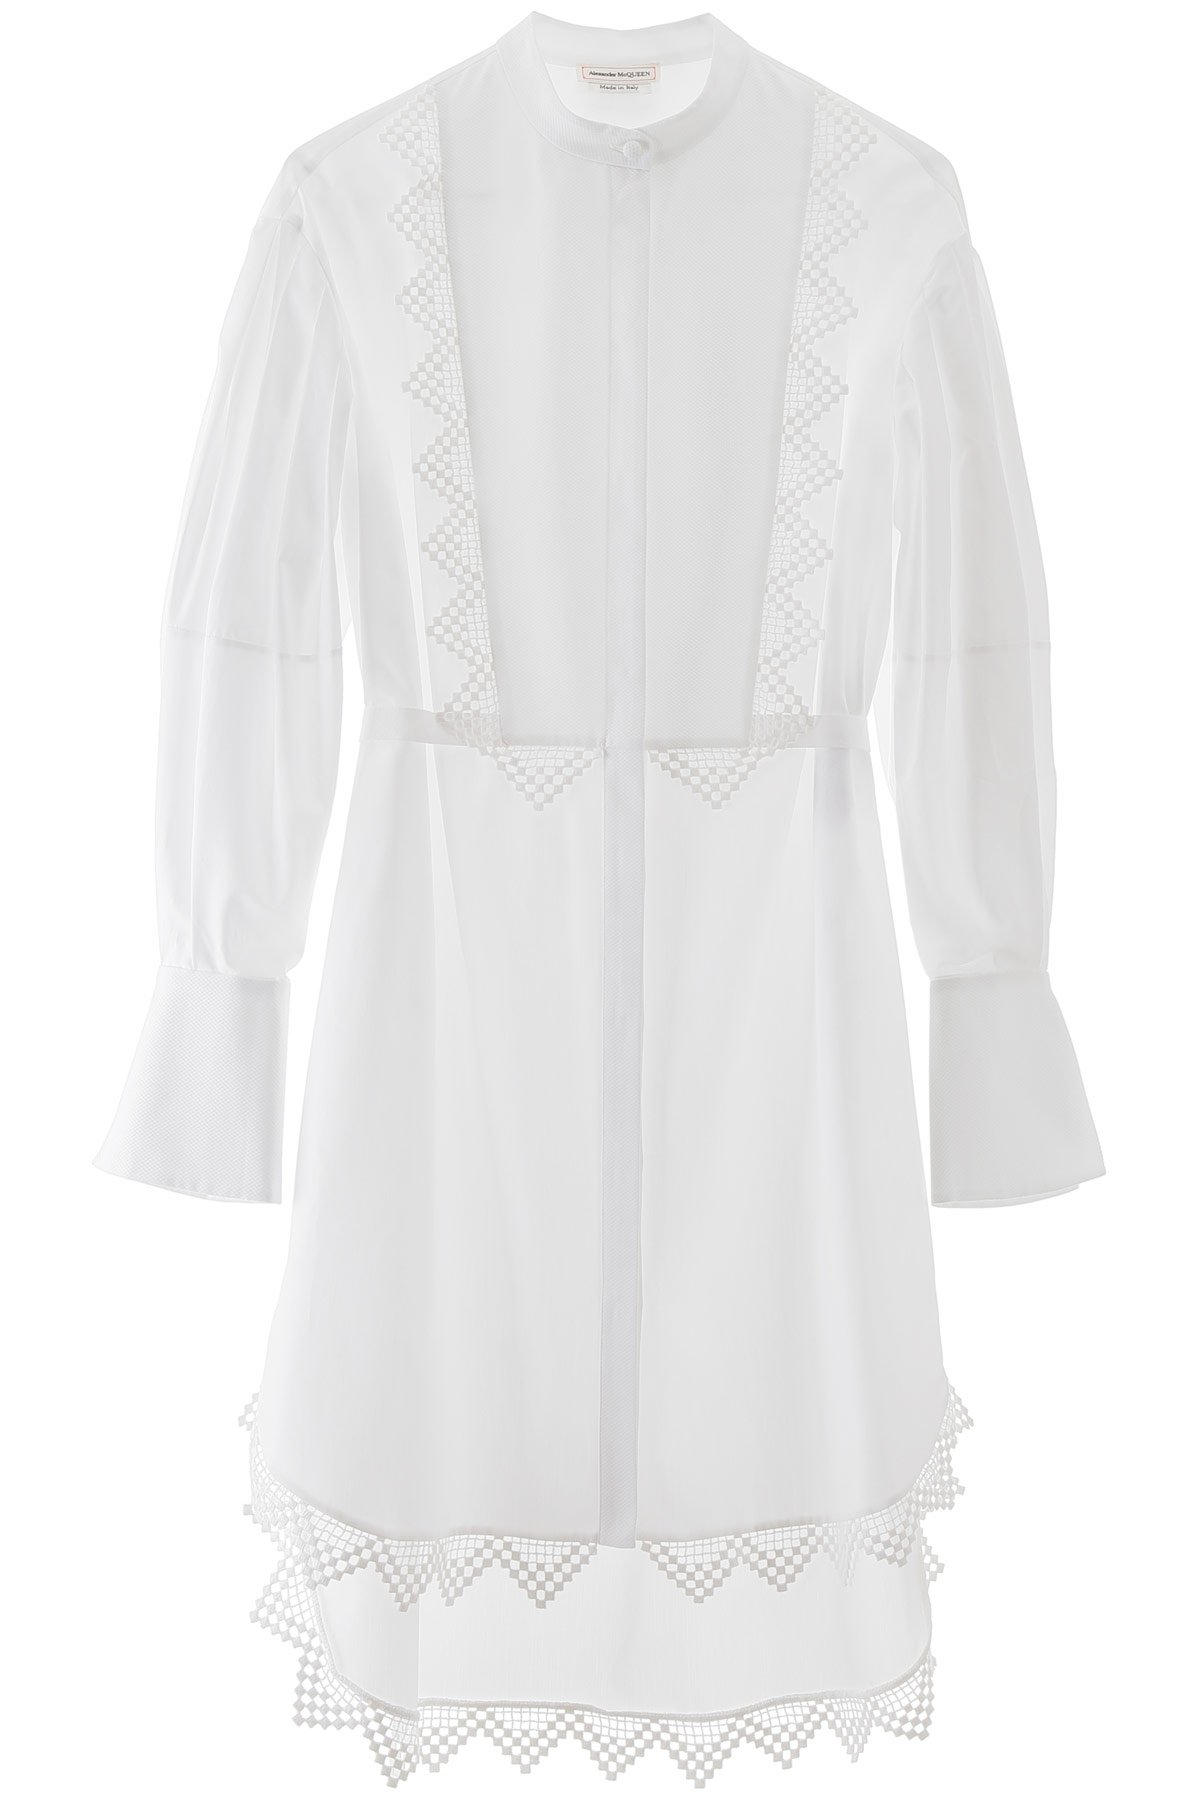 Alexander mcqueen maxi shirt with lace details